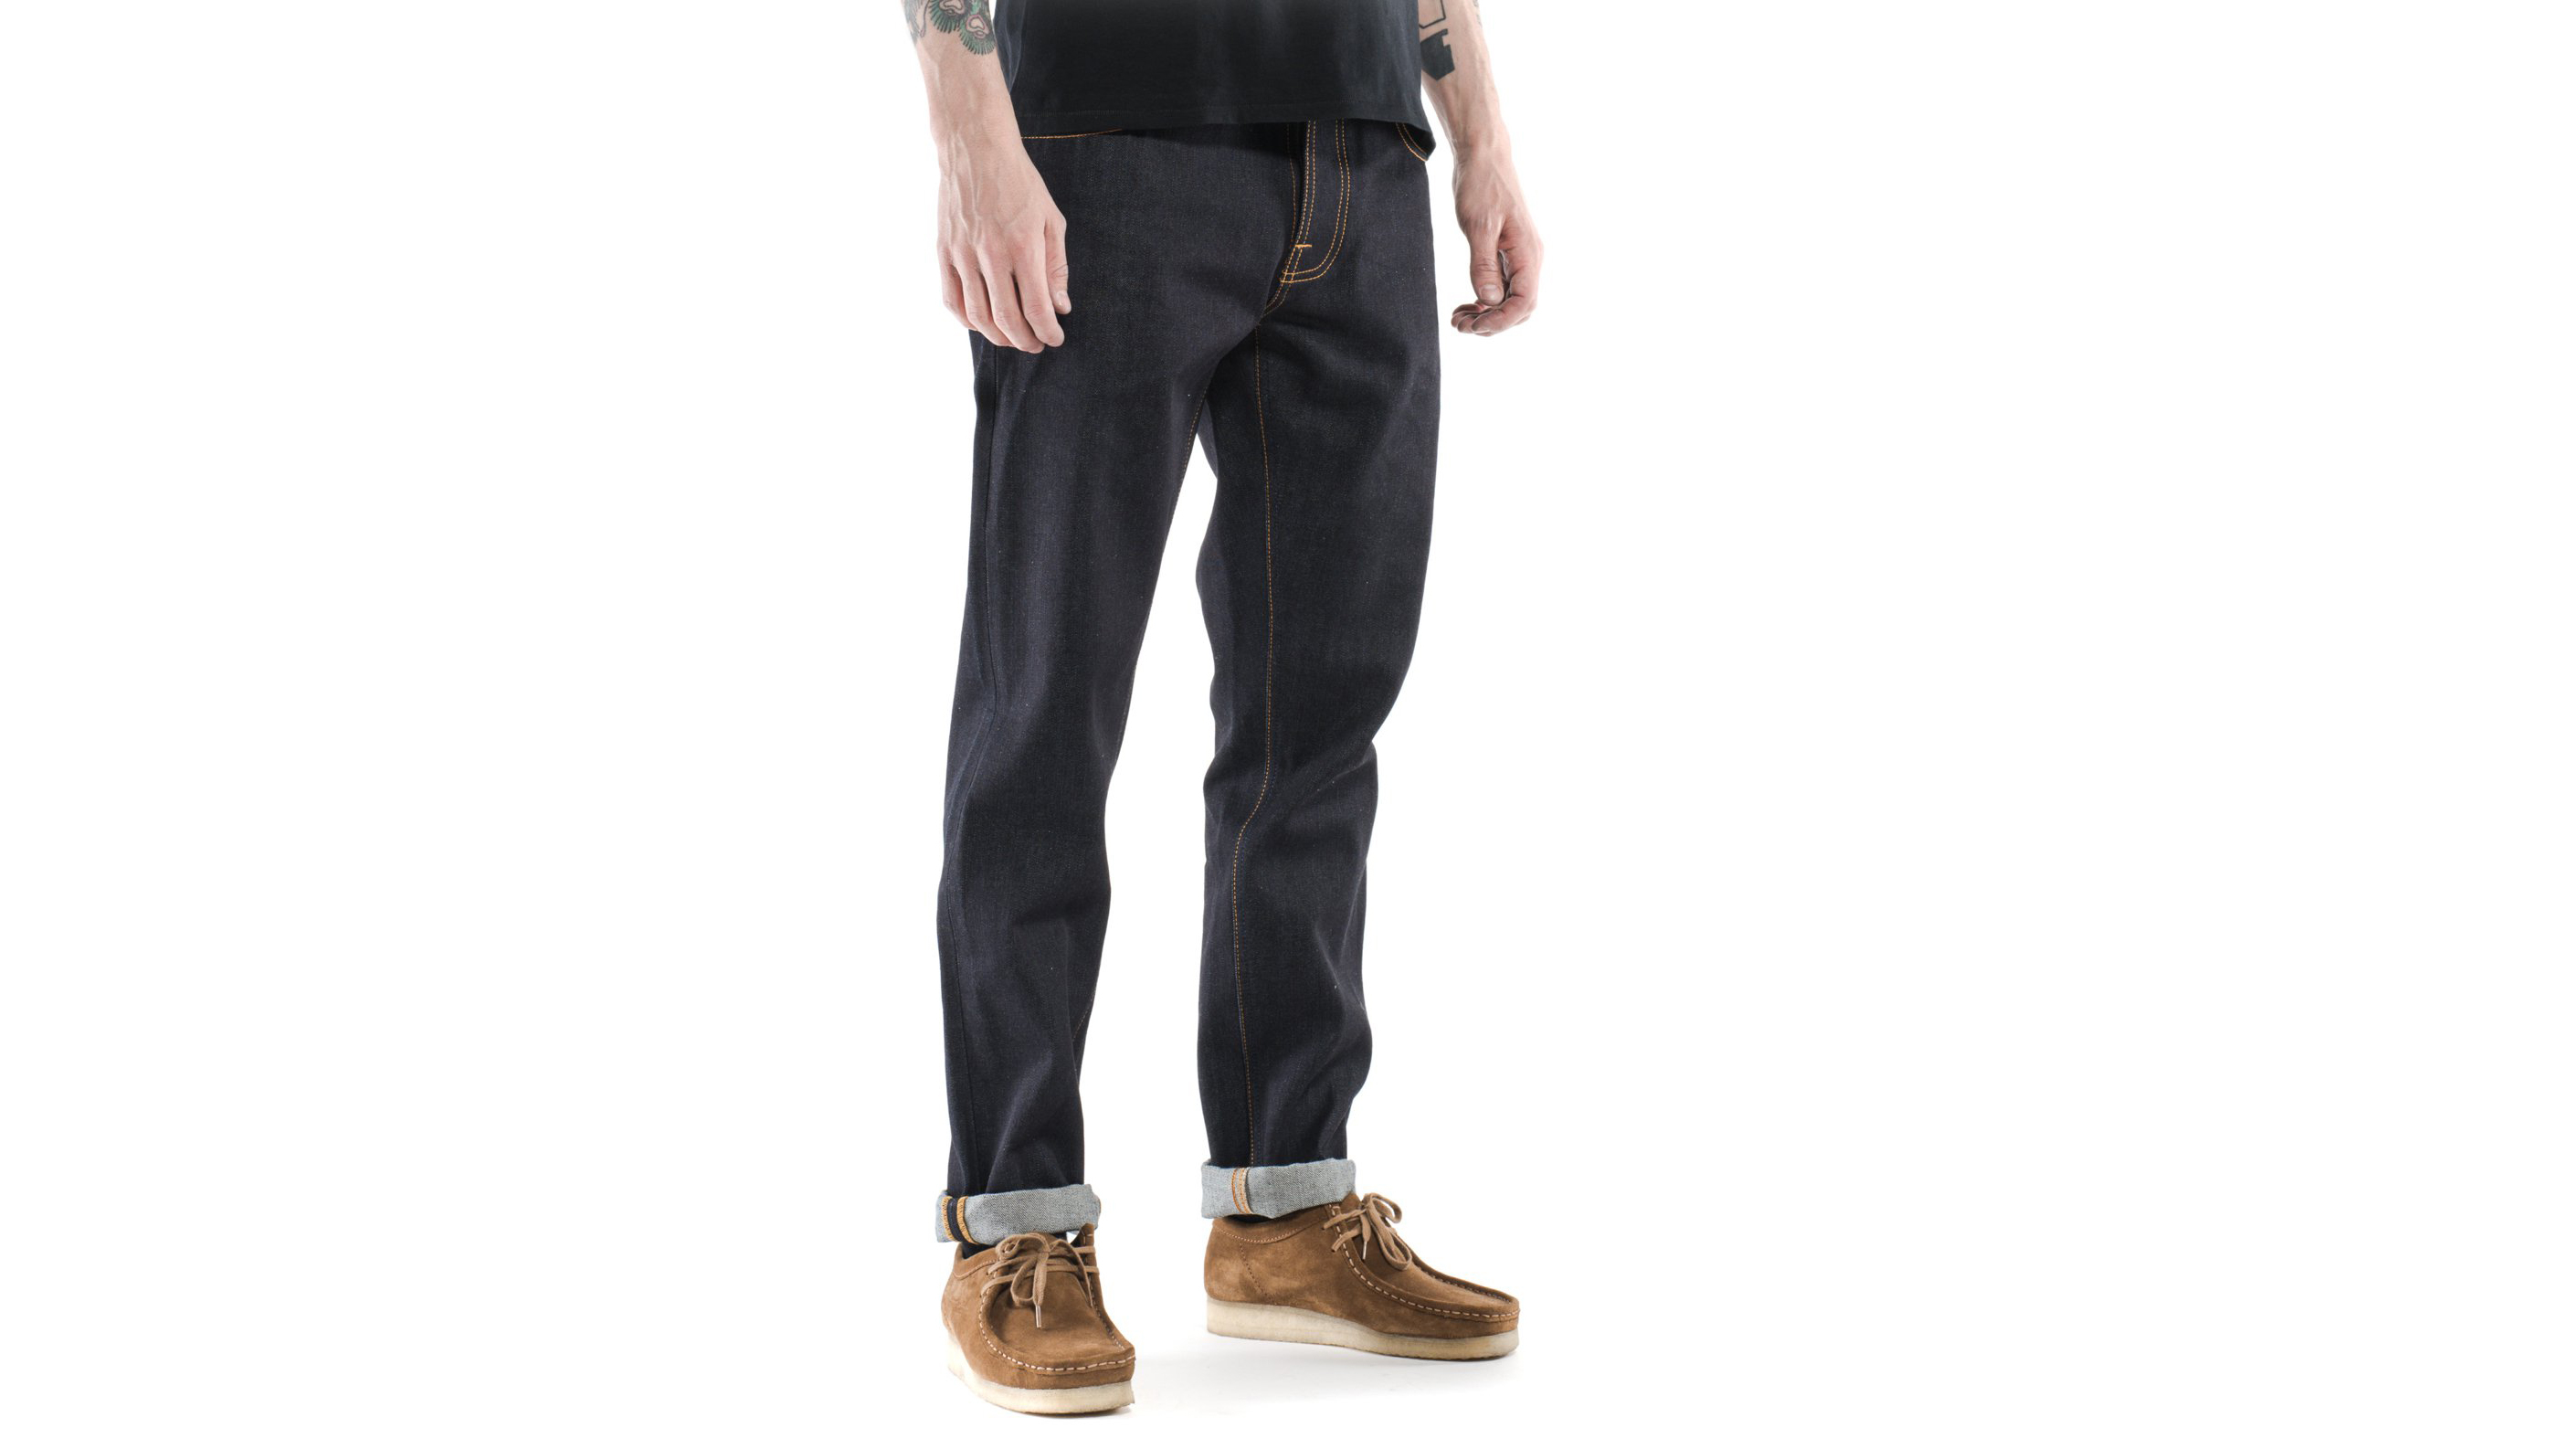 e8556751ed3 Nudie Jeans Co Dry Classic Twill. ""